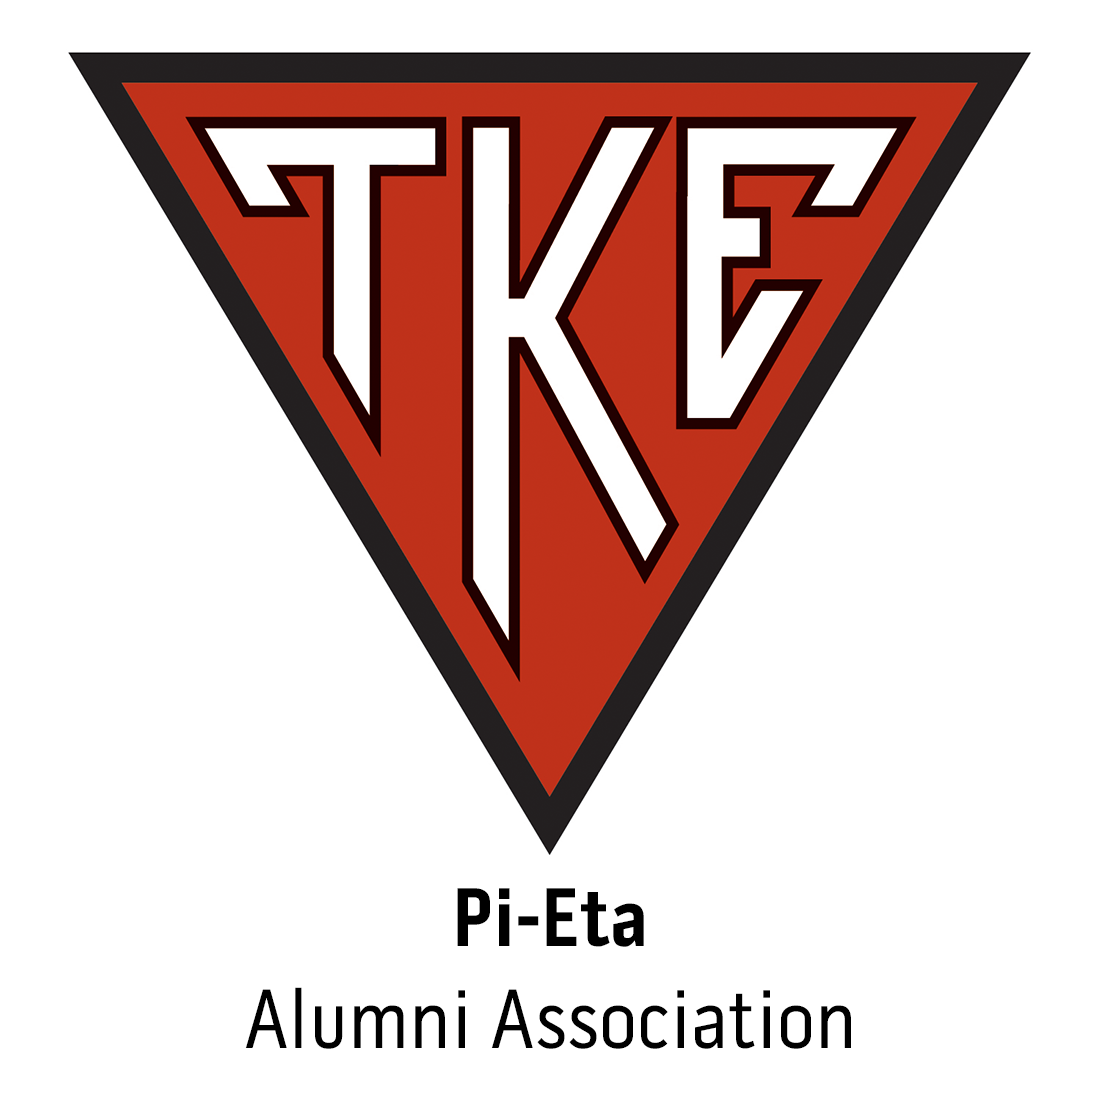 Pi-Eta Alumni Association at Texas A & M University